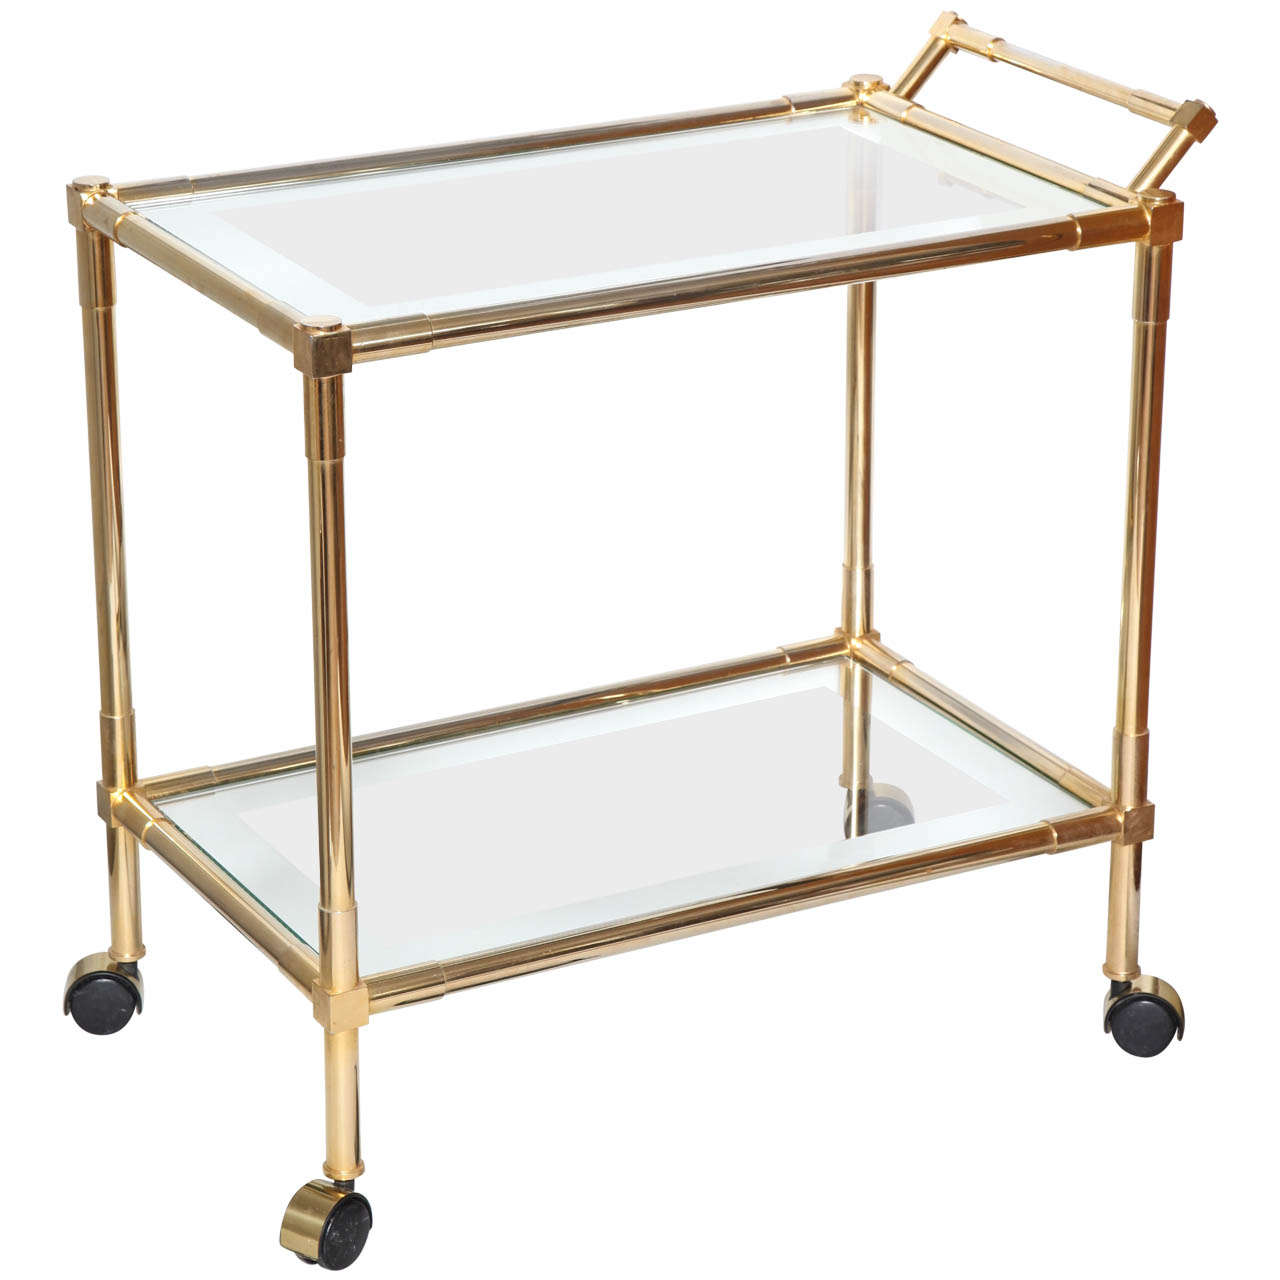 brass and glass mid century bar cart at 1stdibs. Black Bedroom Furniture Sets. Home Design Ideas